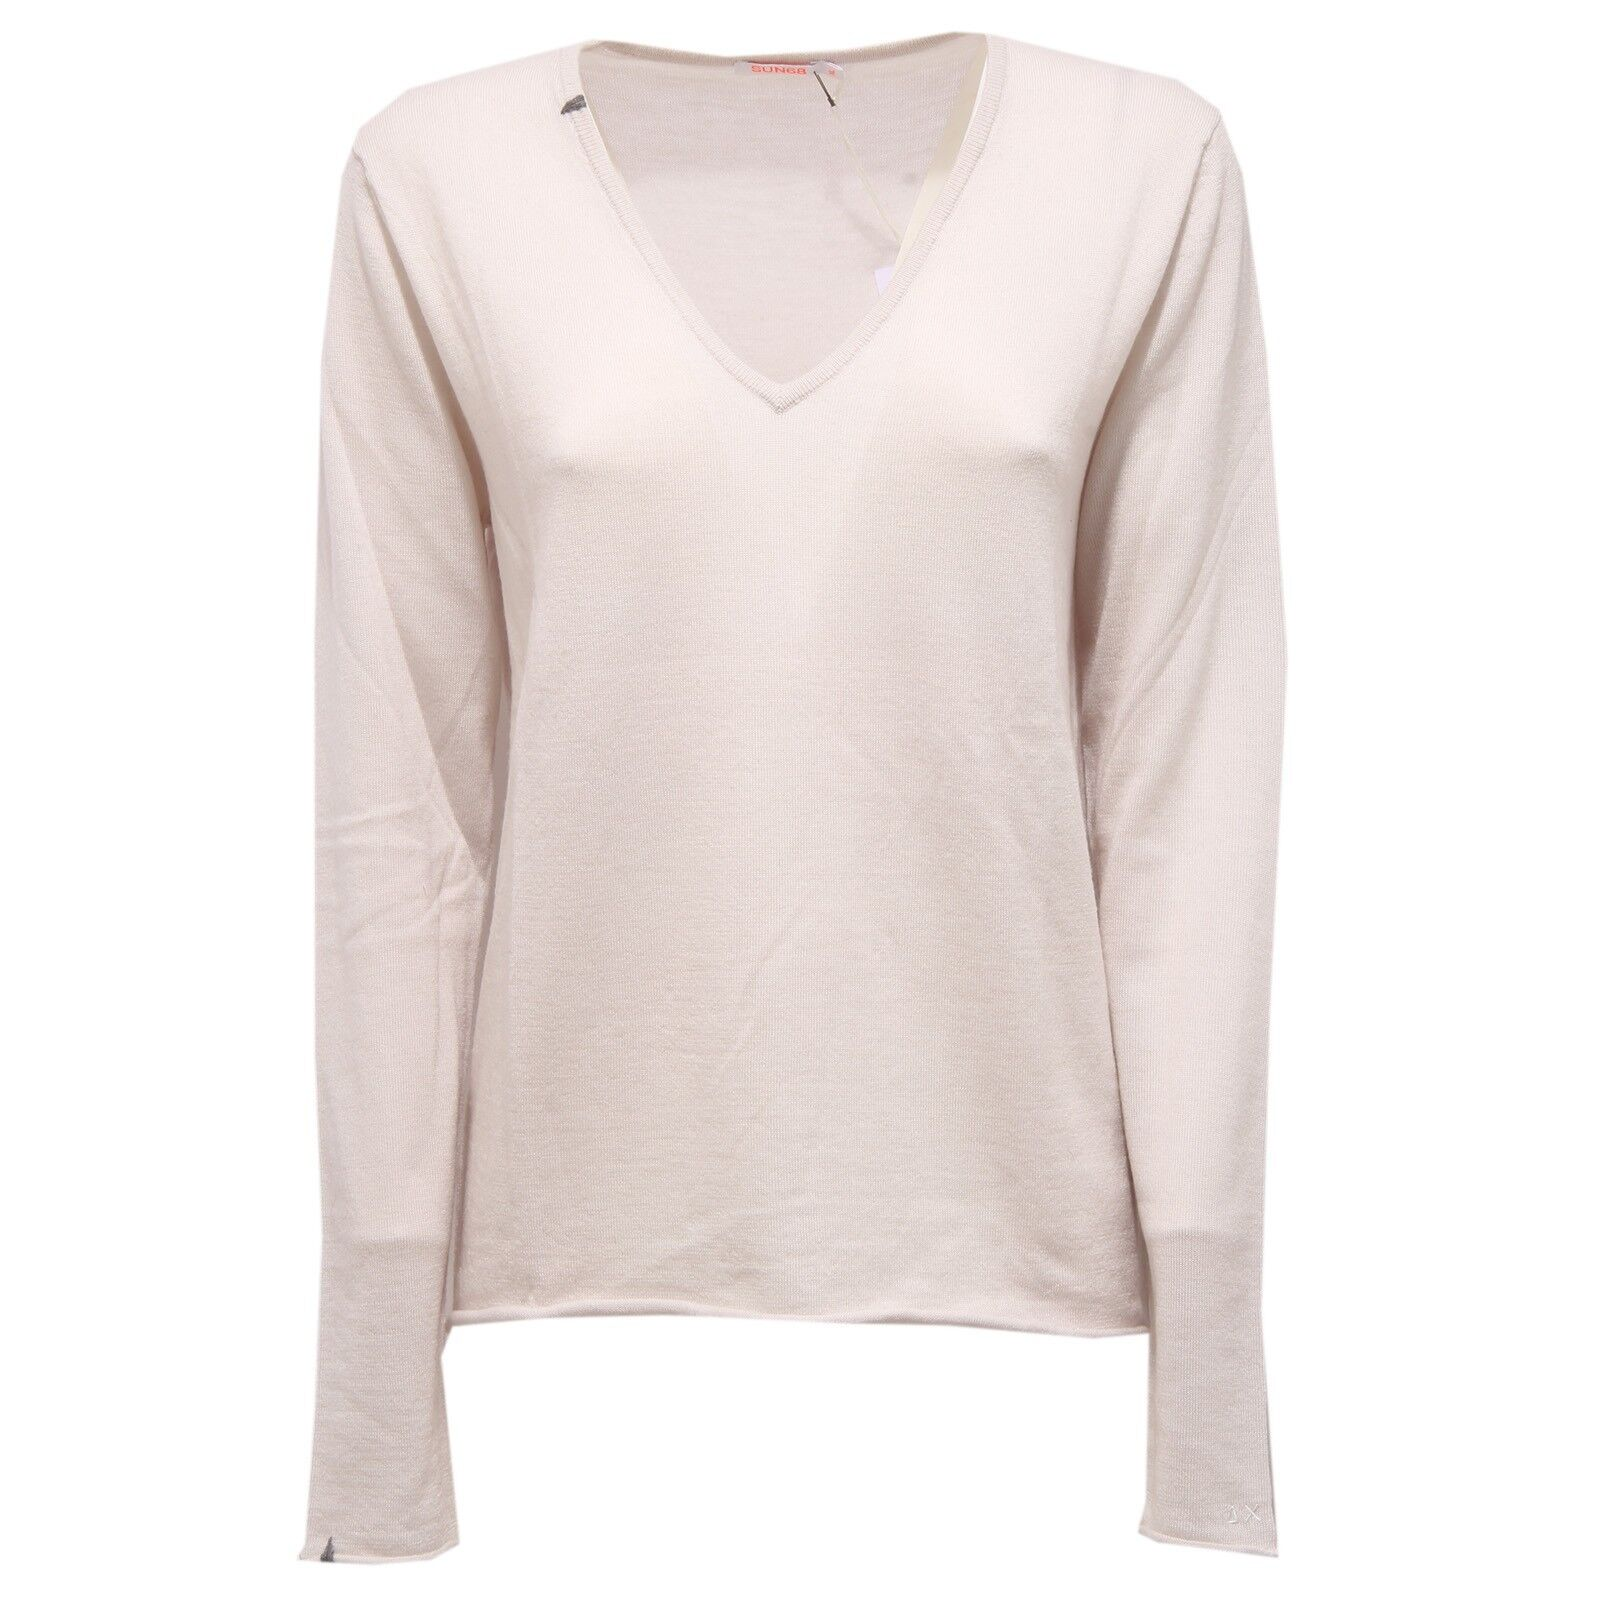 7341V maglione donna SUN 68 extrafine wool ivory sweater Donna